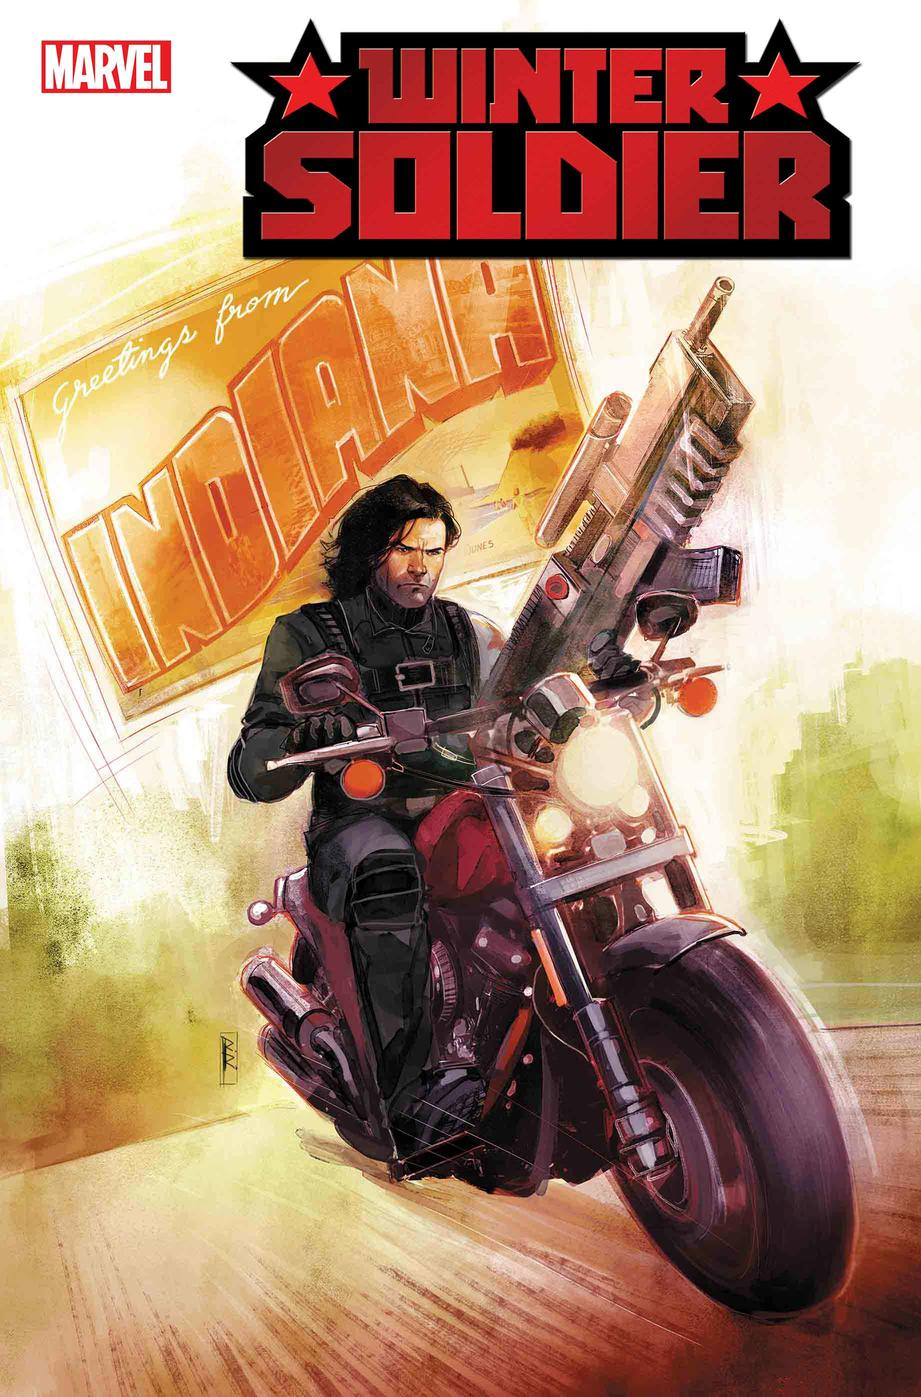 Bucky Barnes Rides Again in New WINTER SOLDIER Miniseries by